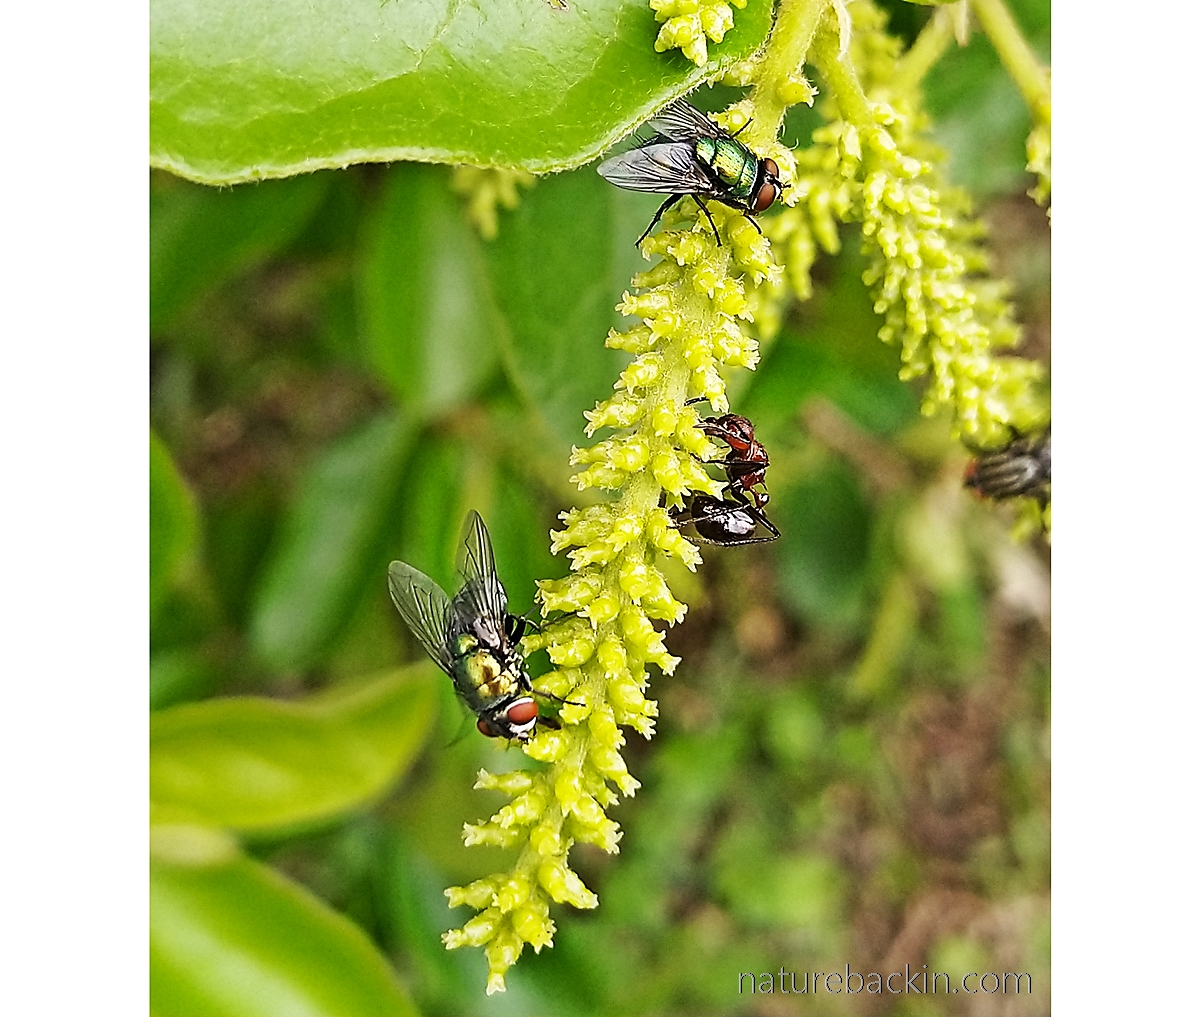 Blow flies and ant feeding on flowers of tassell-berry tree